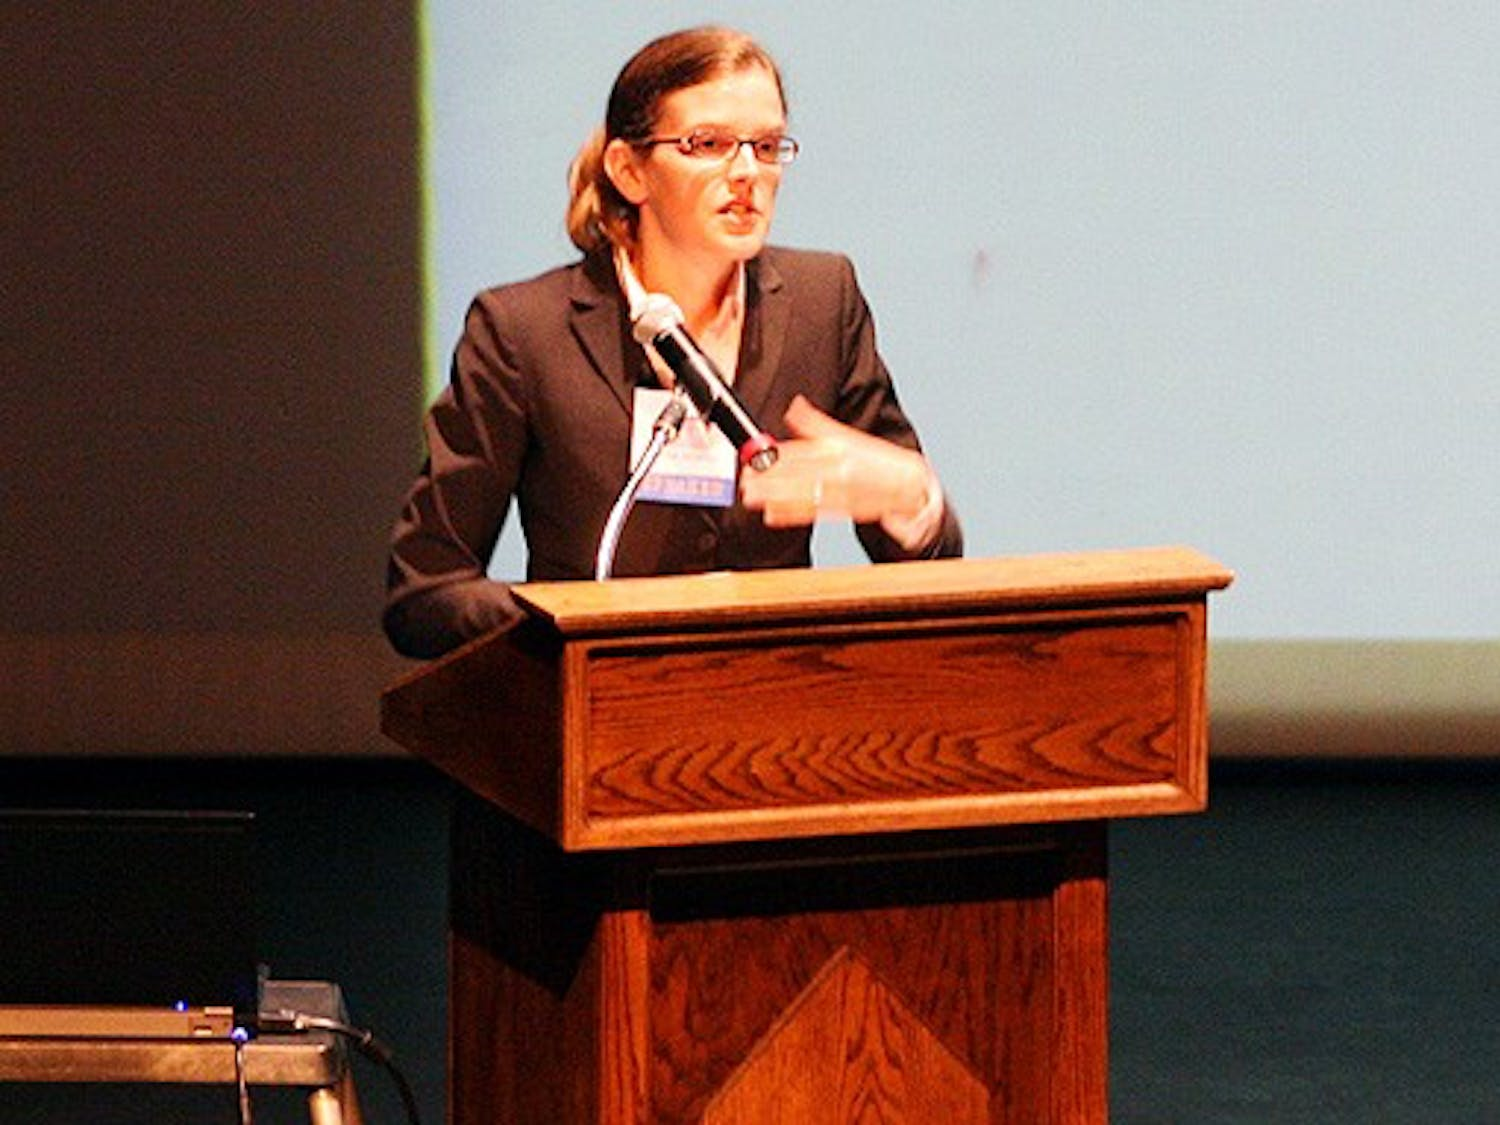 Hannah Wiseman, a professor at Florida State University, speaks about the legal regulations surrounding fracking.